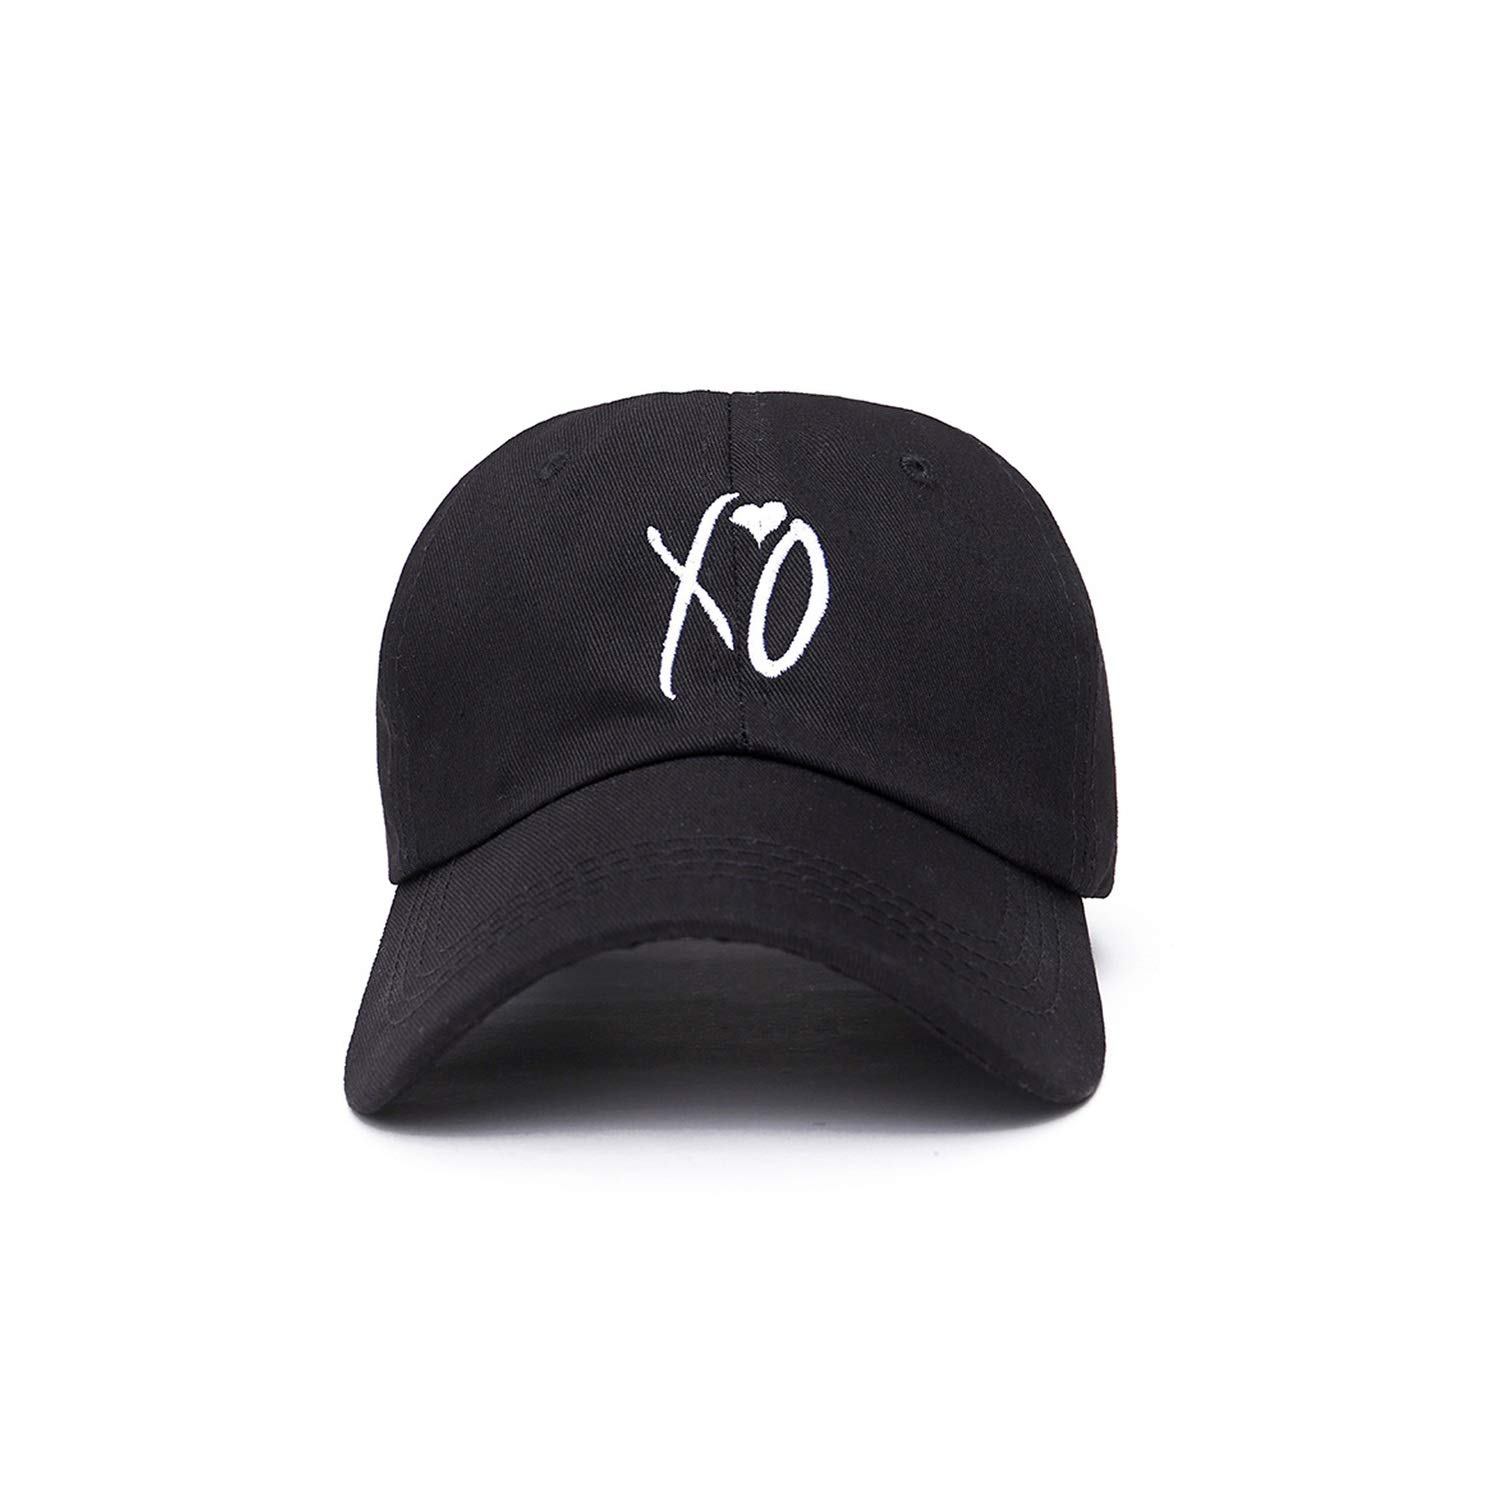 Aovic-M Fashion Adjustable Hat The Weeknd Snapback Hats for Men Women Brand Hip Hop Dad Caps